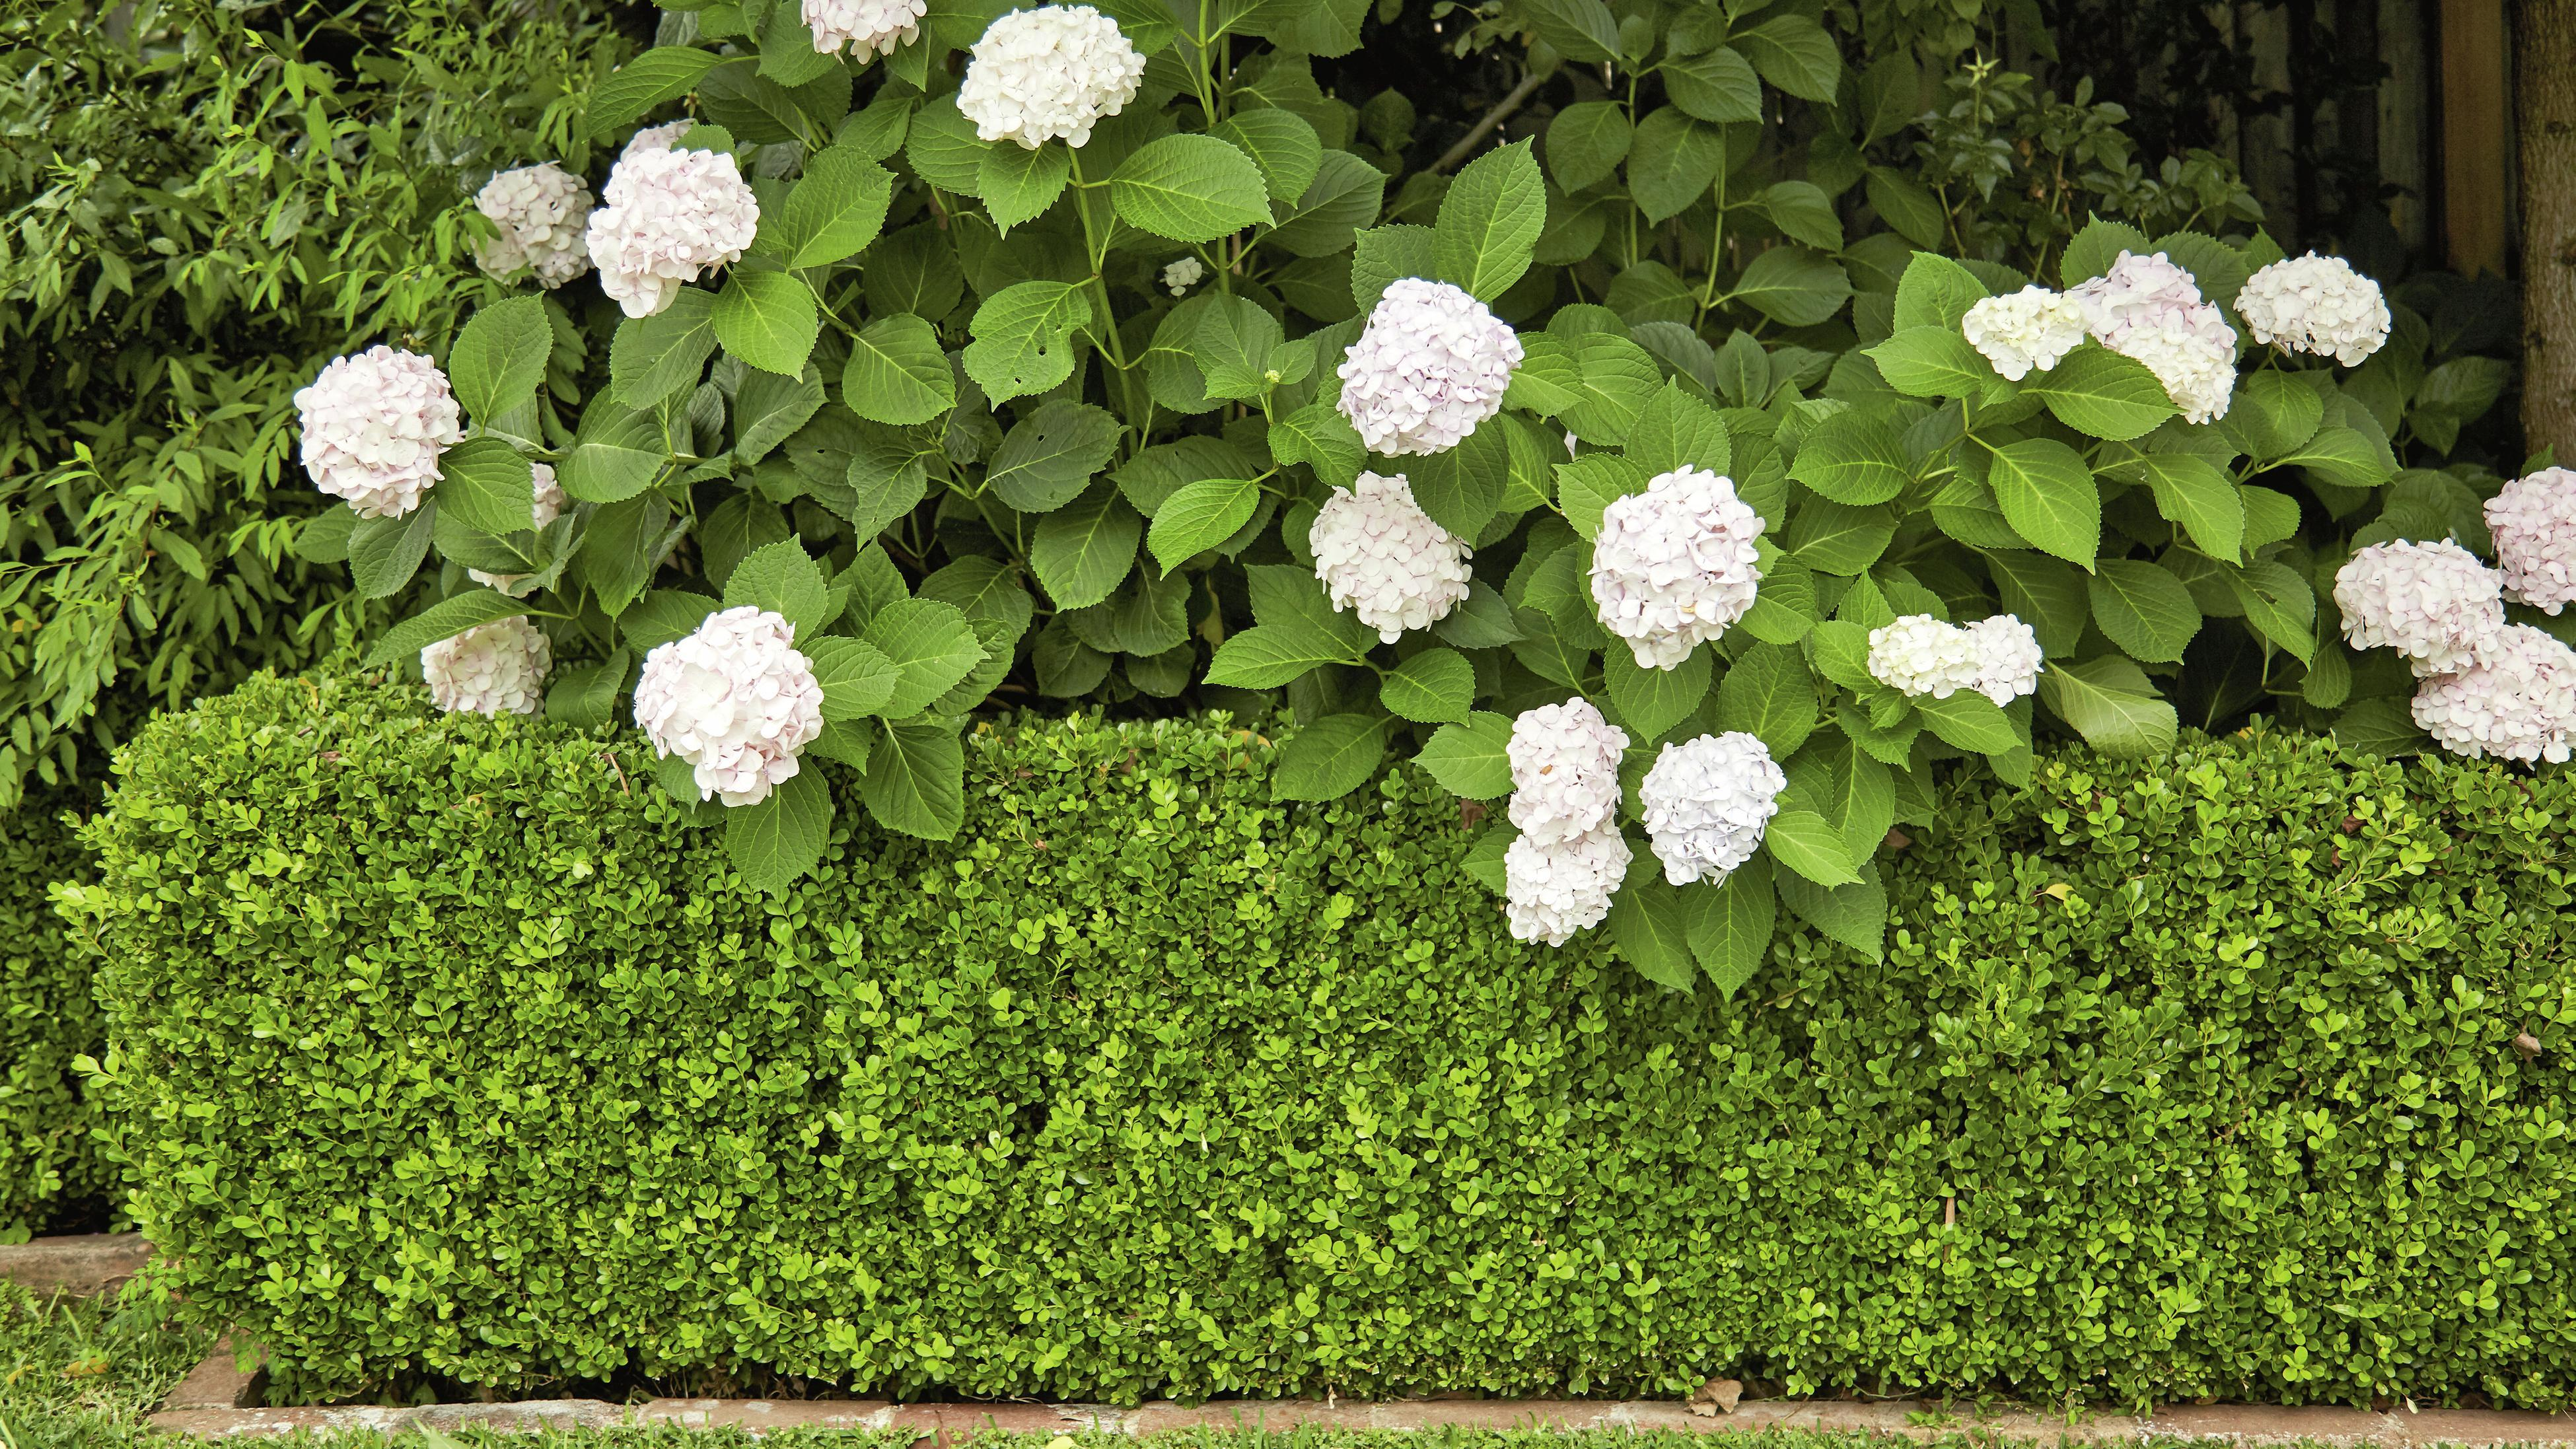 Trimmer hedge with flowers growing on it.